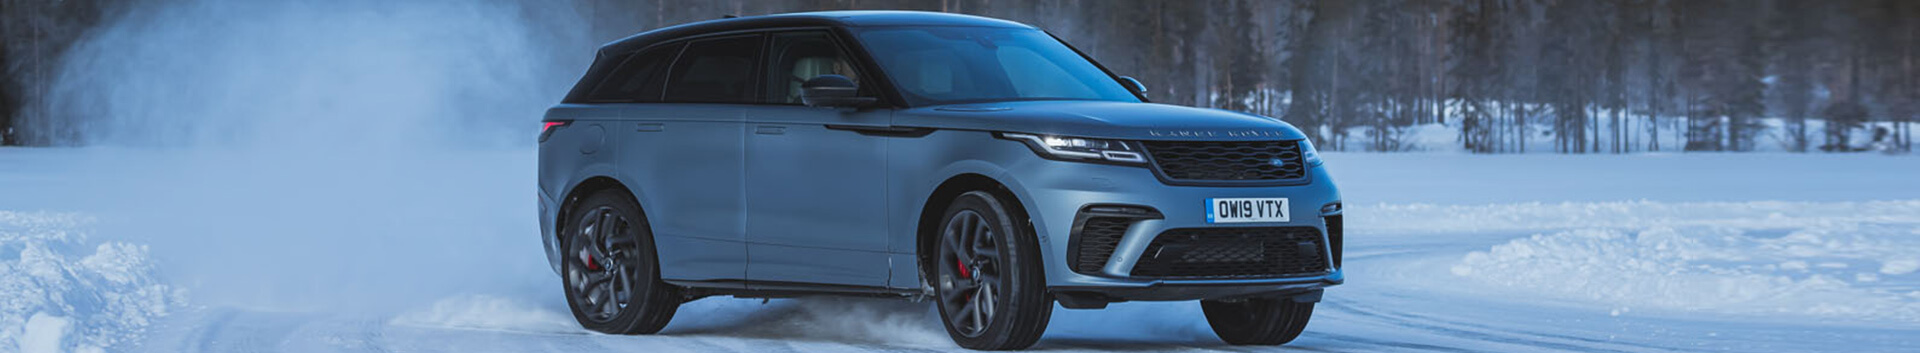 Lease or Finance at Land Rover of Richmond